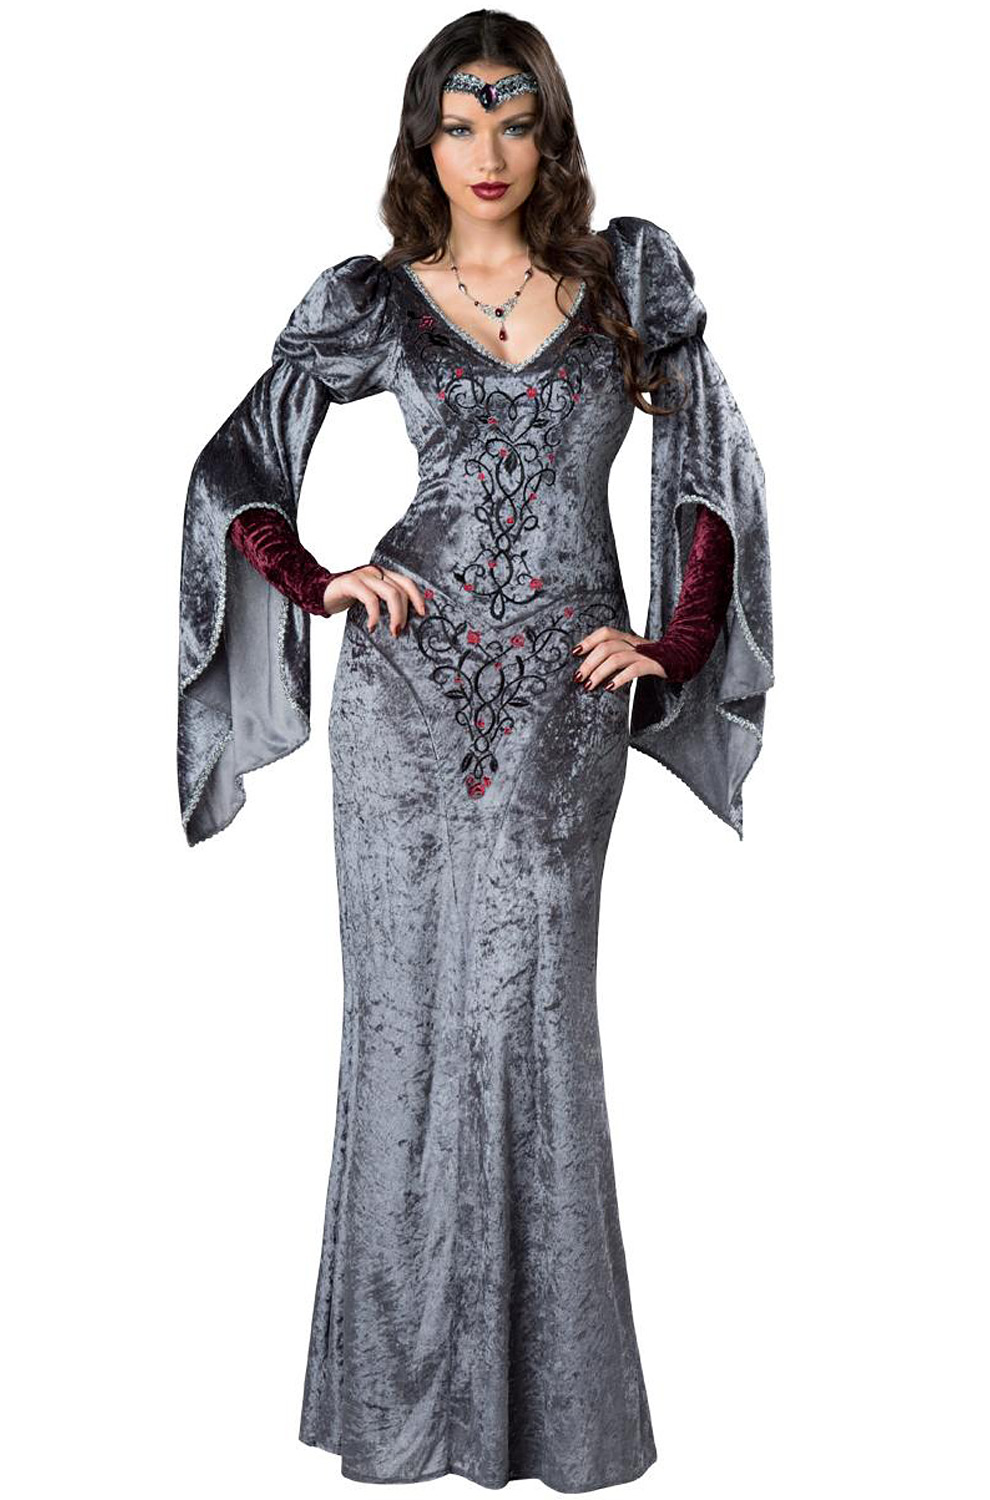 Dark Medieval Maiden Adult Costume